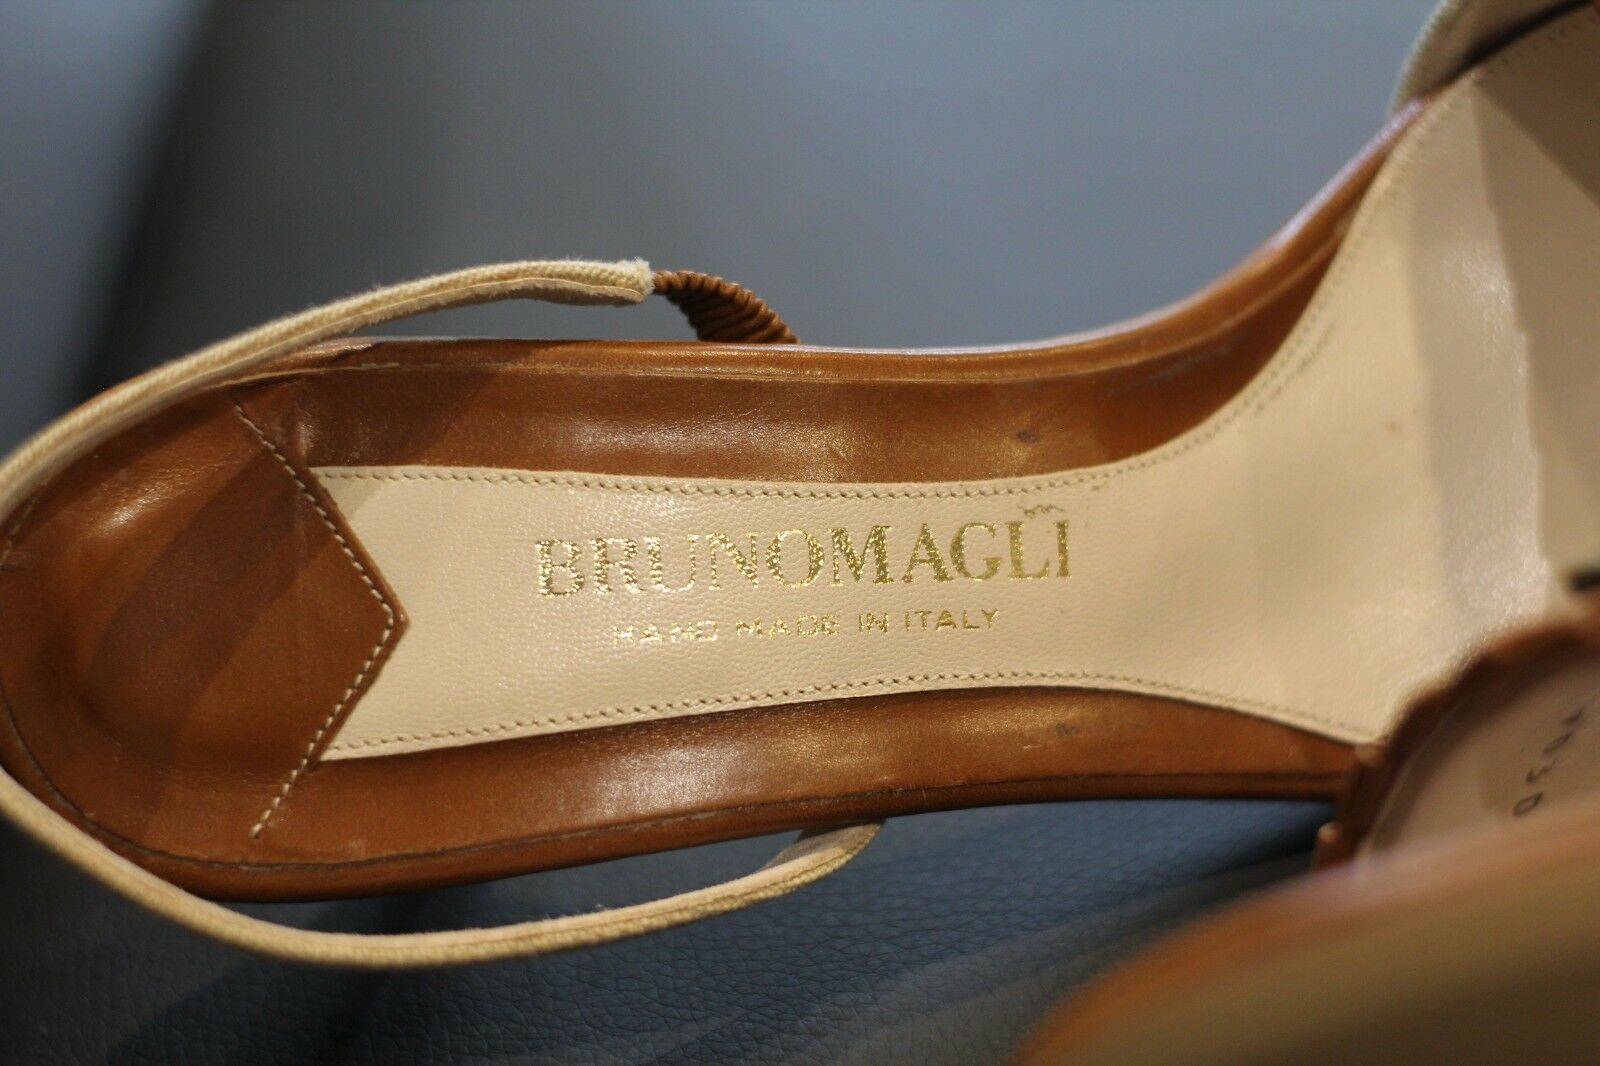 Bruno Bruno Bruno Magli Rare Tan & braun Leather Sandals Slingbacks schuhe Heels New Größe 7.5 56a847